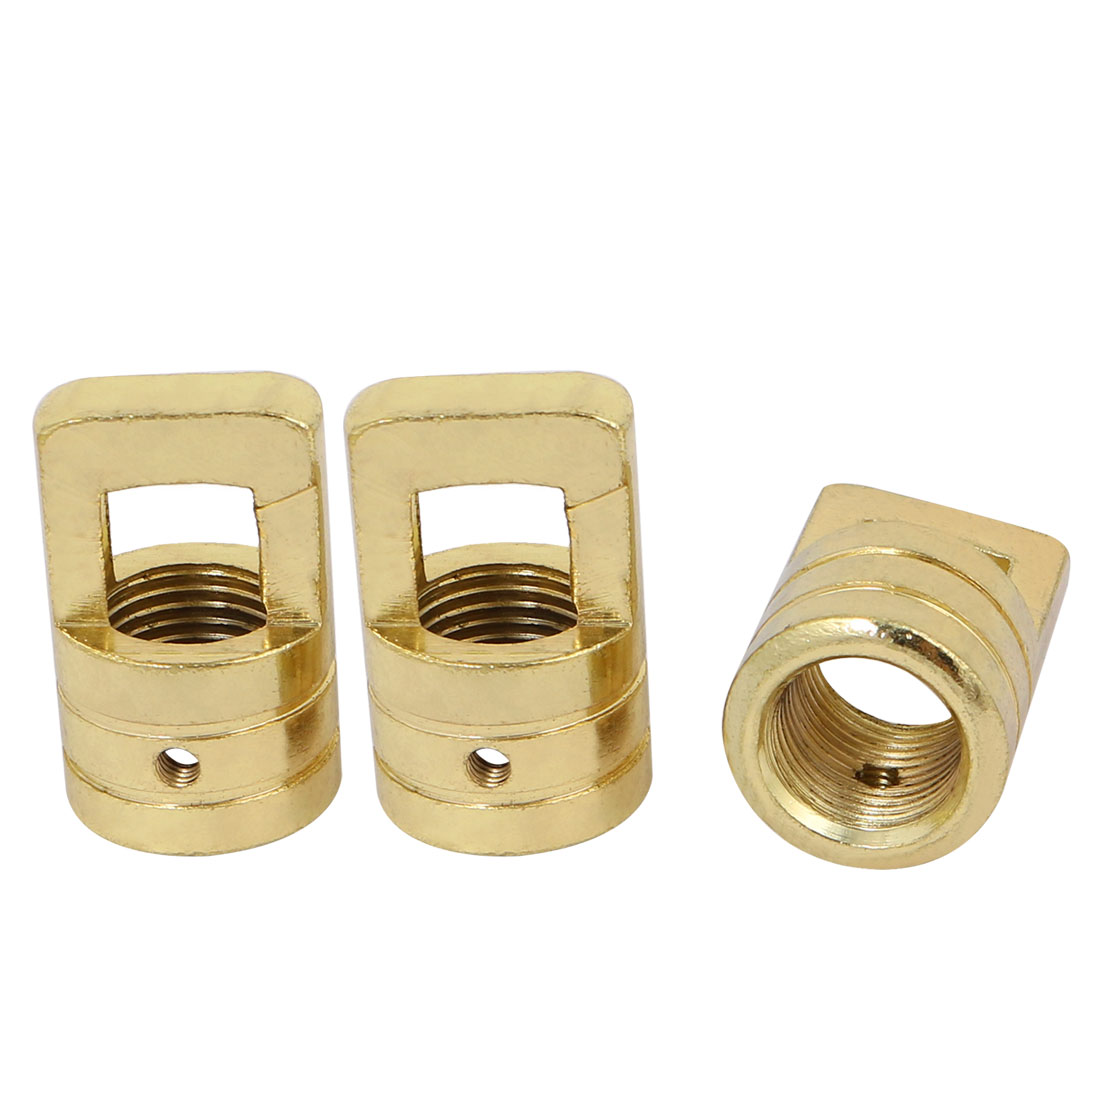 3pcs 23mm x 37mm M16 Female Thread Lamp Loop Ring Golden for DIY Chandelier